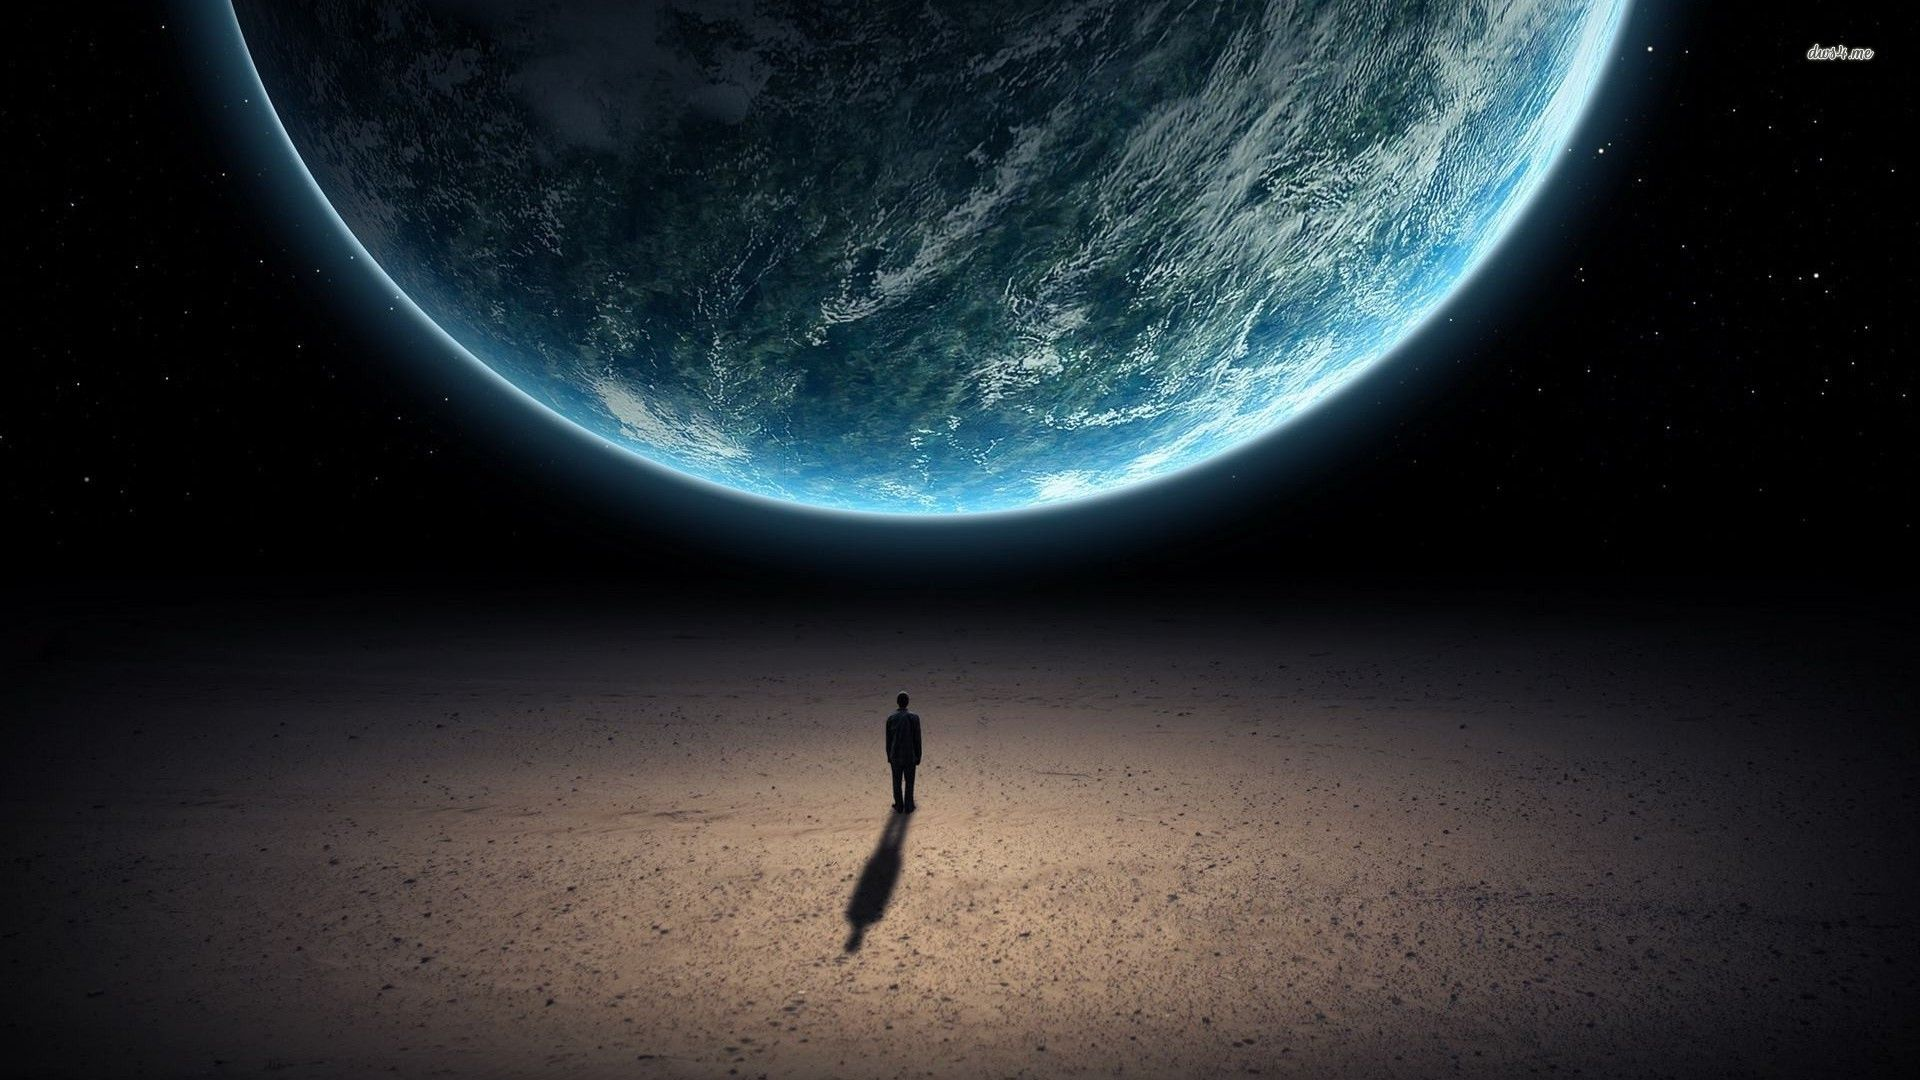 Man Looking At Earth From Space Wallpaper